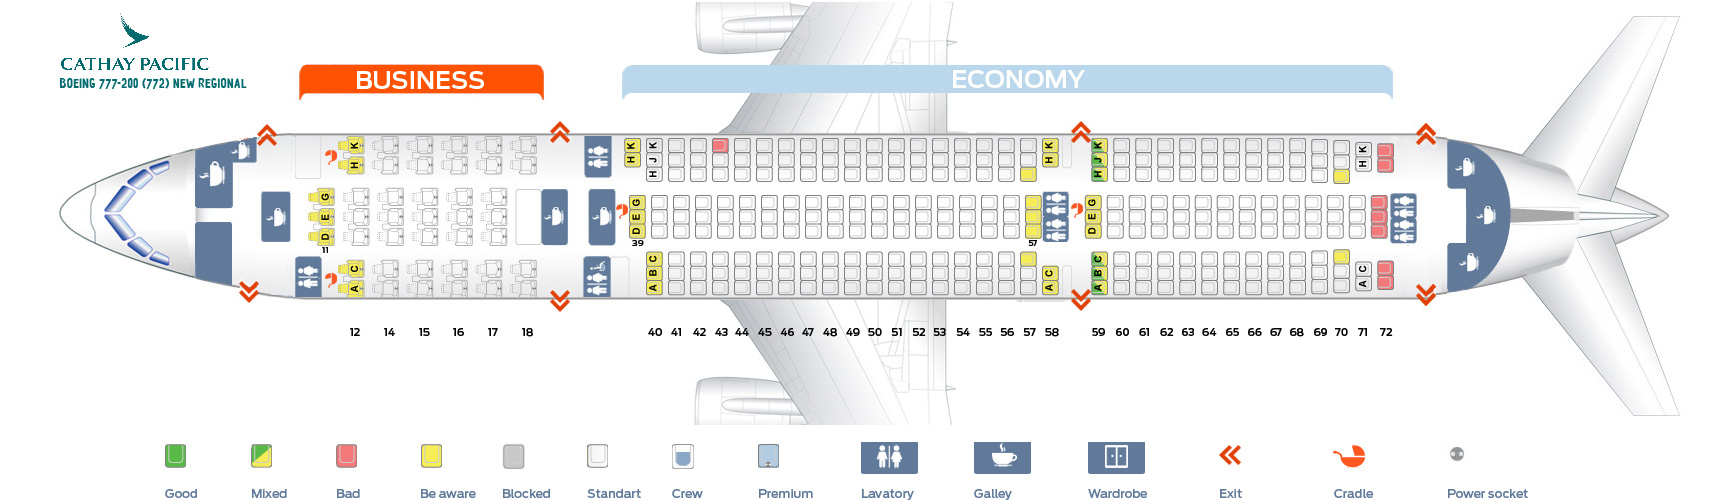 Cathay Pacific Seat Map Seat map Boeing 777 200 Cathay Pacific. Best seats in the plane Cathay Pacific Seat Map